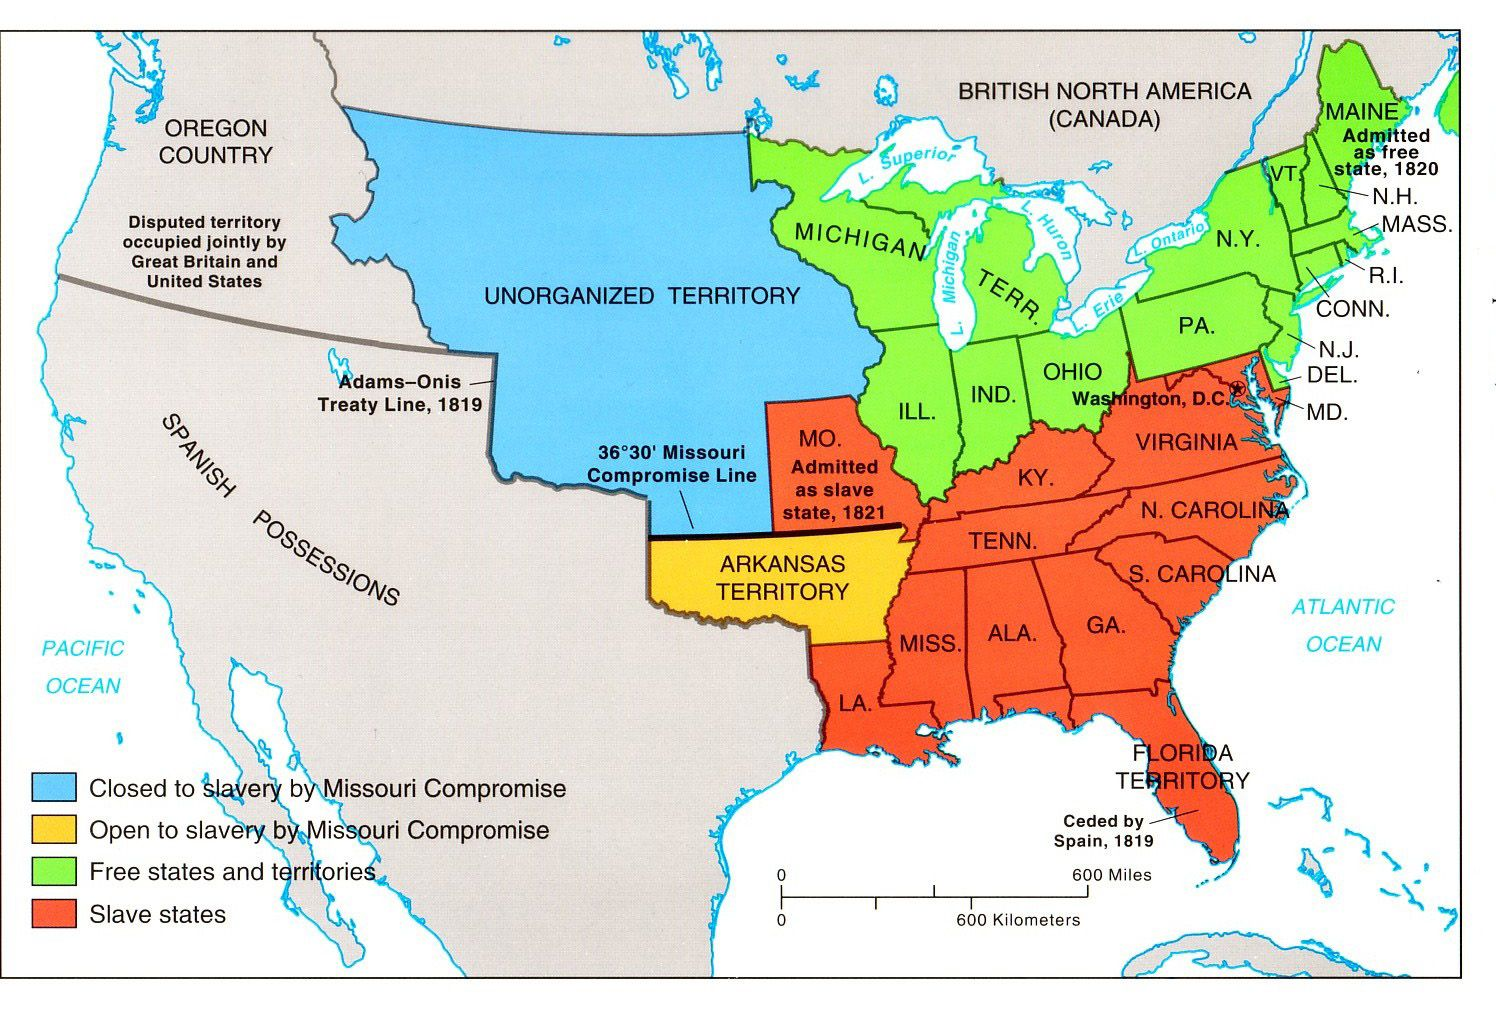 slave state free state map The Missouri Compromise Of 1820 As A Result Of The Missouri